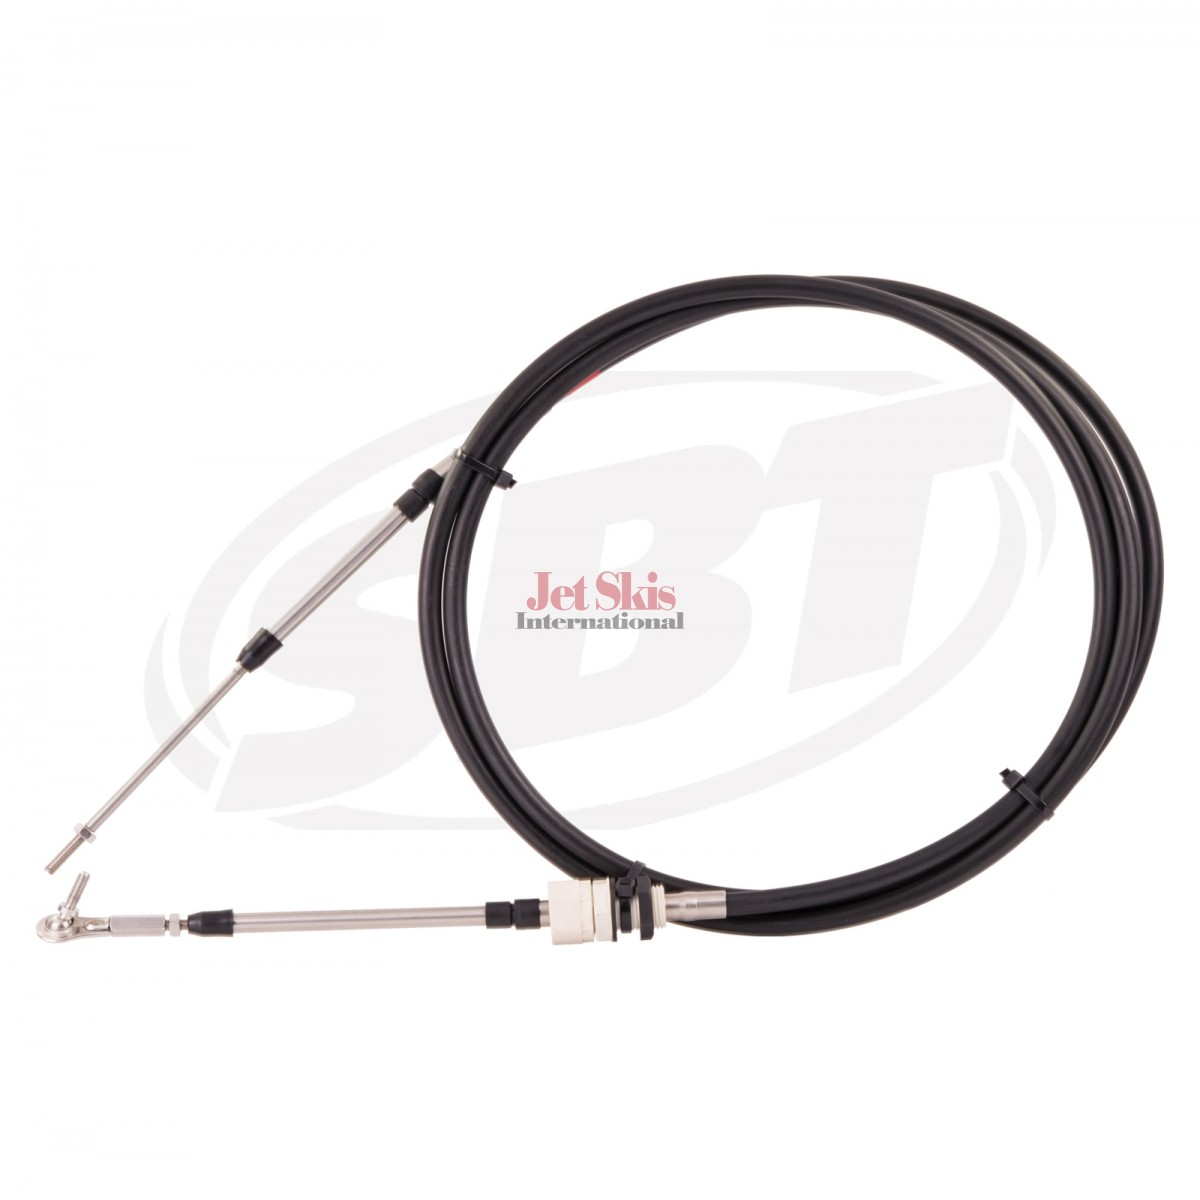 Yamaha Gp 800 Wave Runner 760 Steering Cable